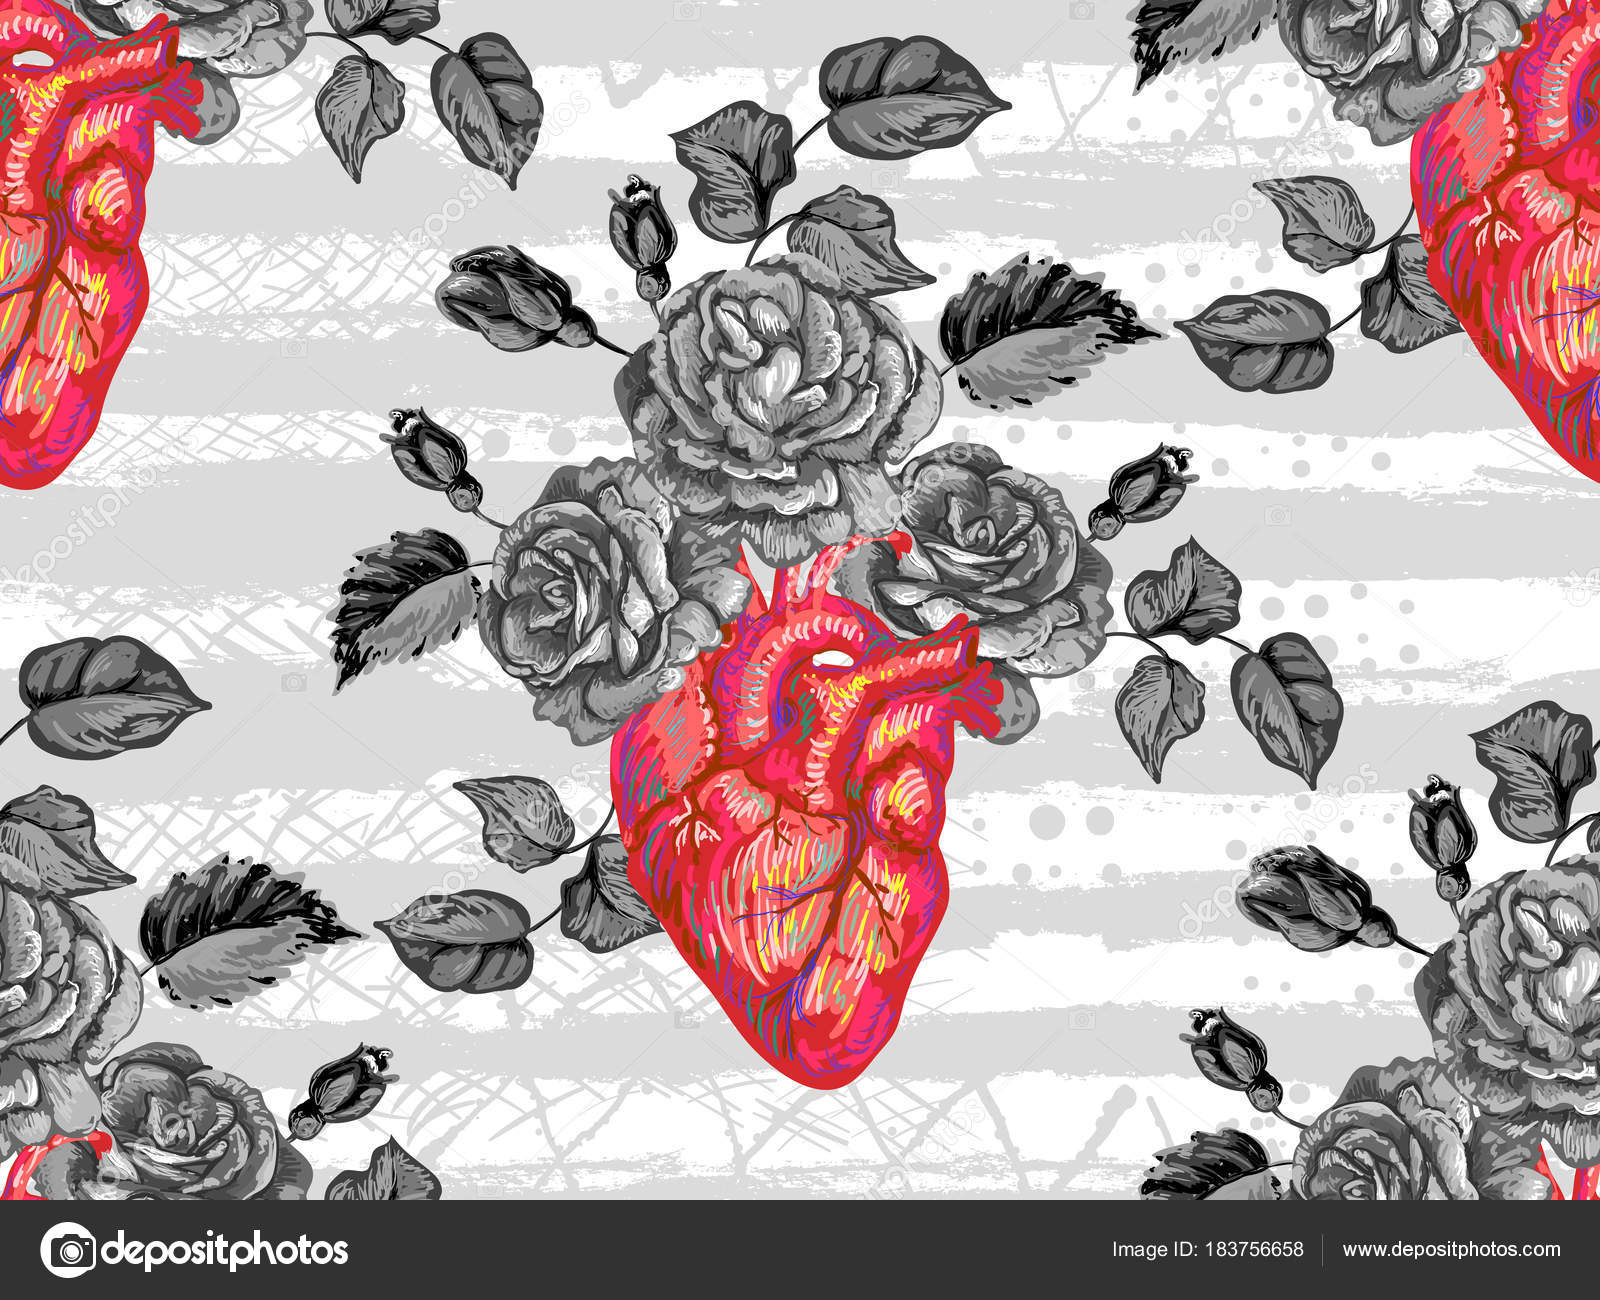 Anatomical Heart Wallpaper Seamless Pattern With Rose